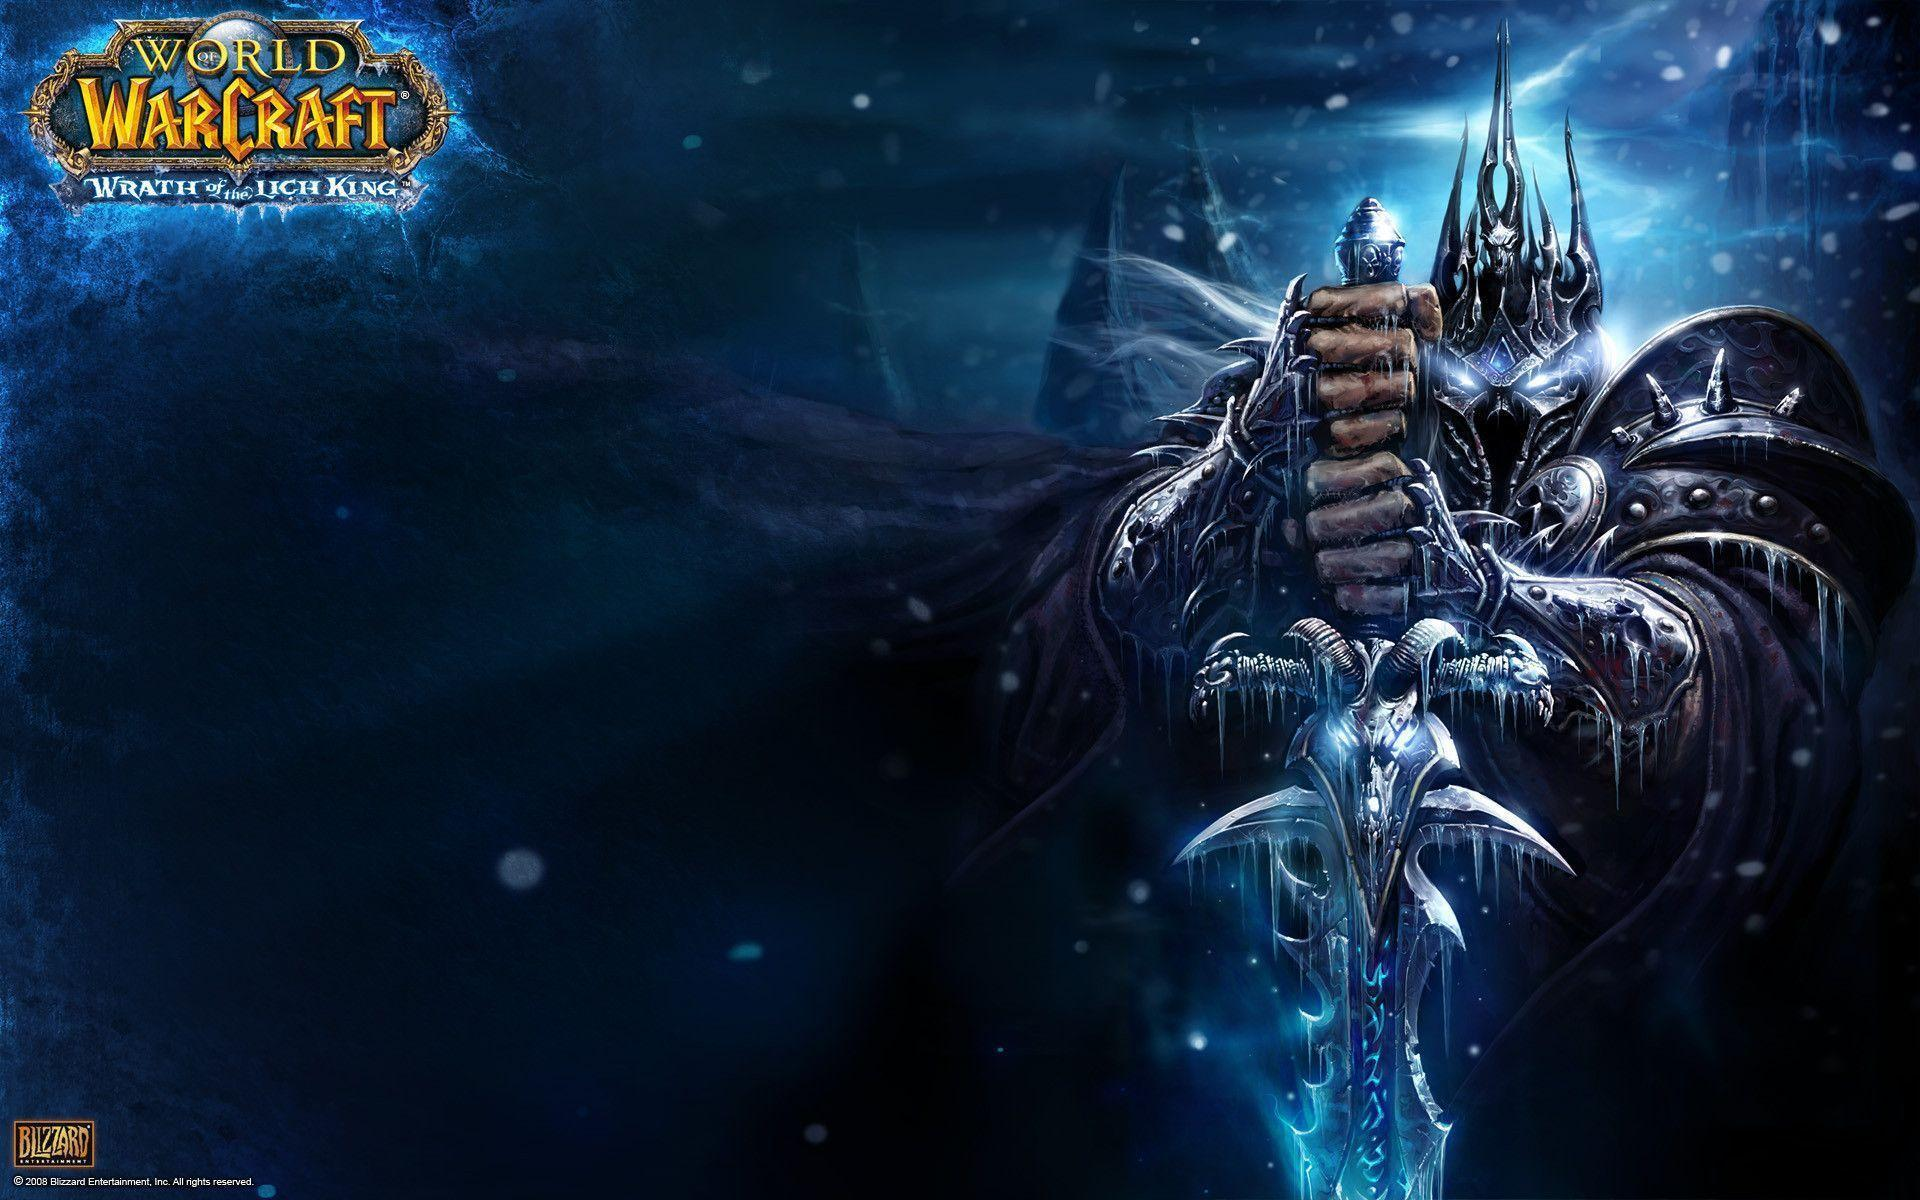 World Of Warcraft Wallpapers Hd wallpapers